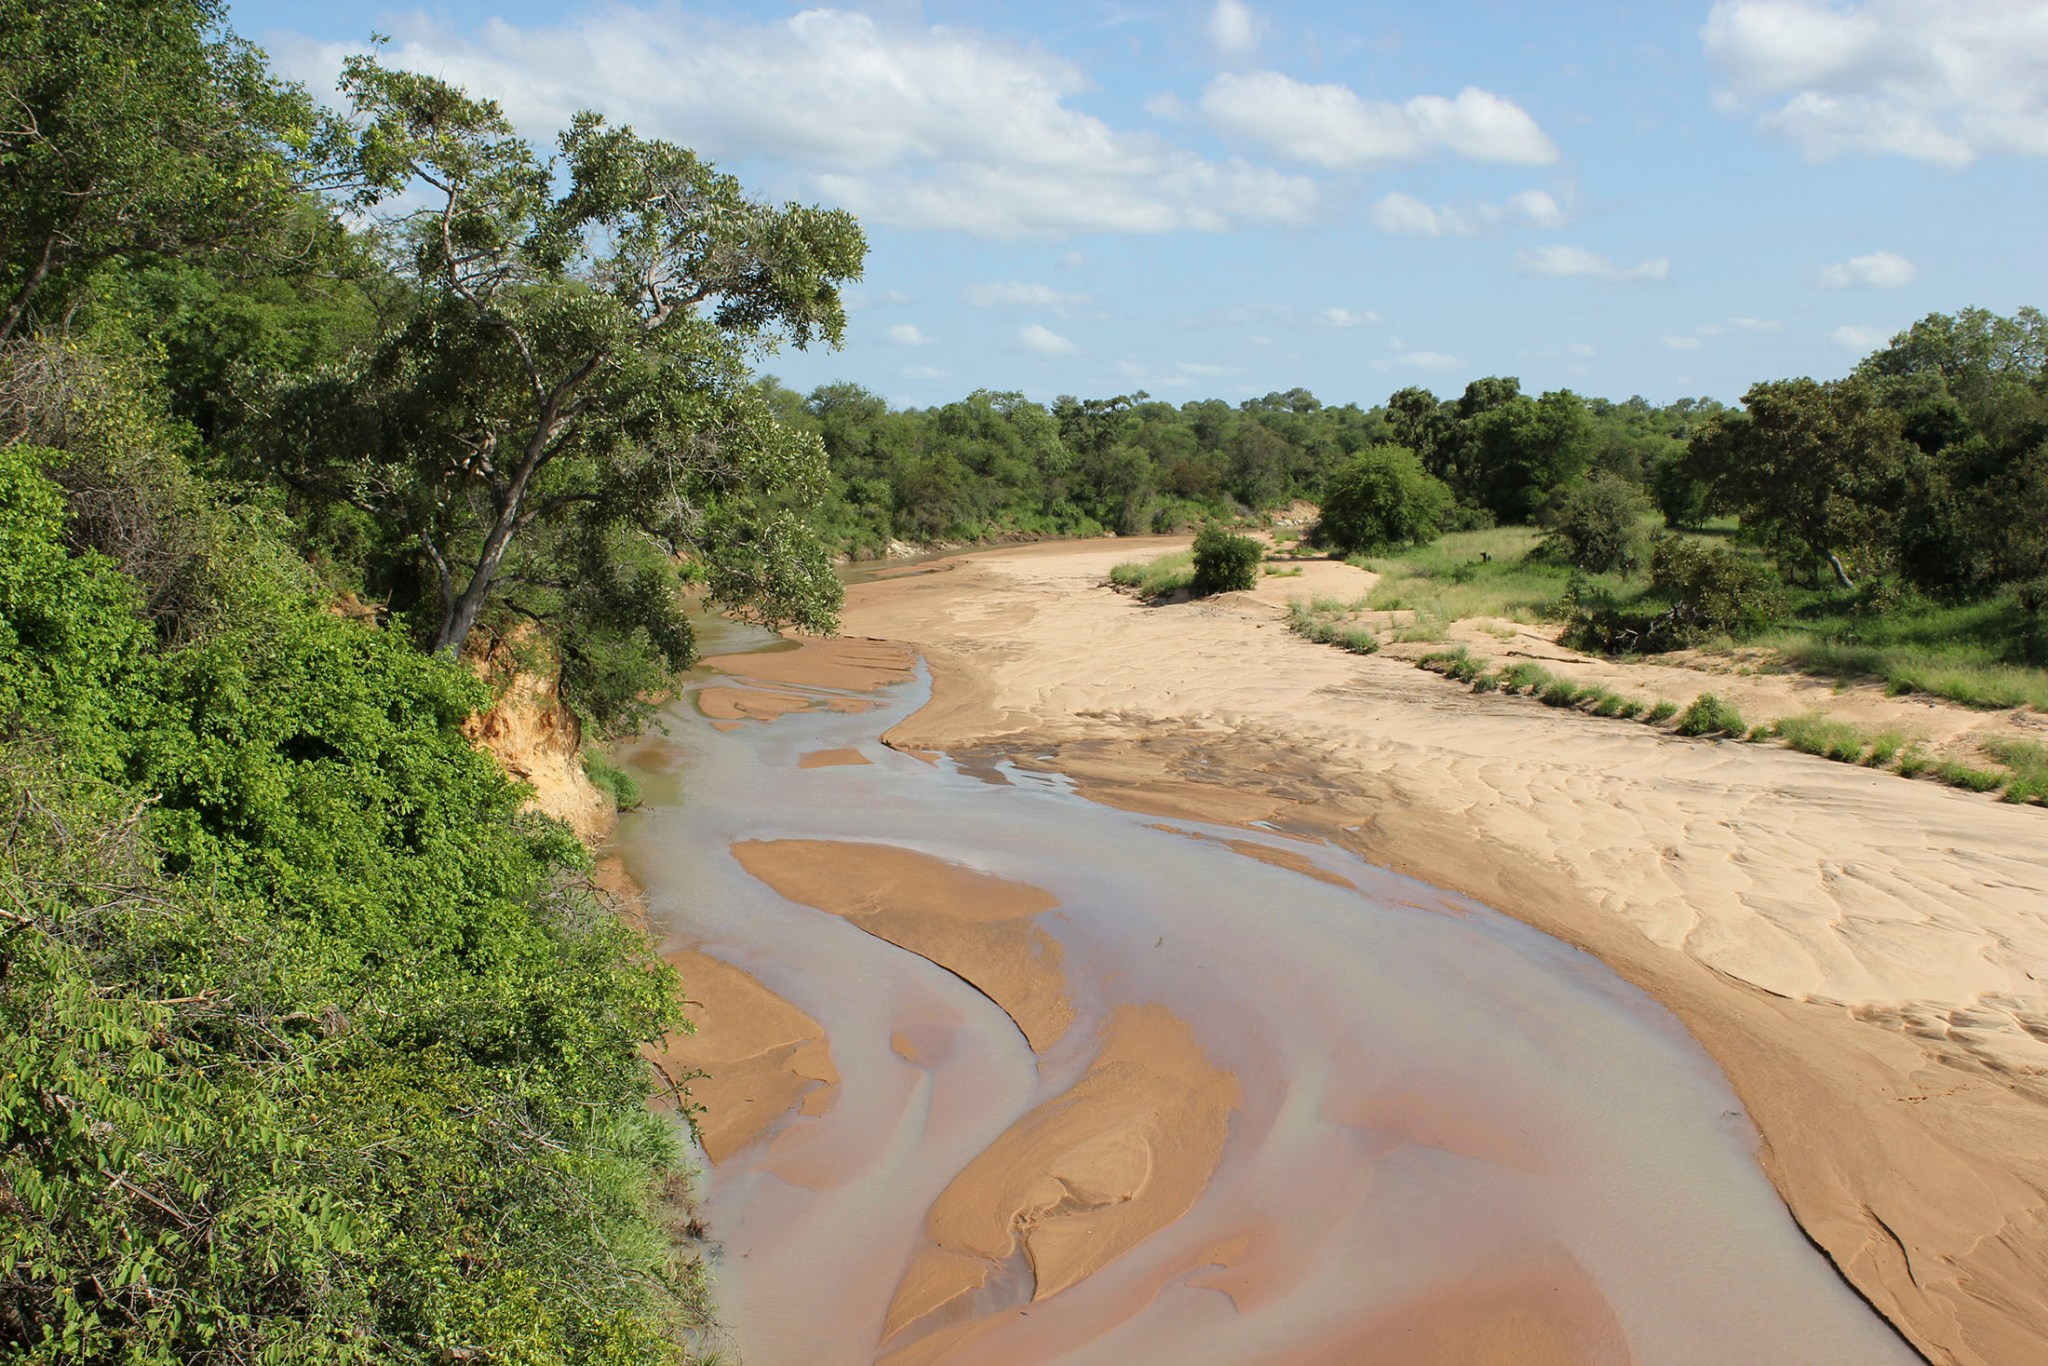 Photo of sand river